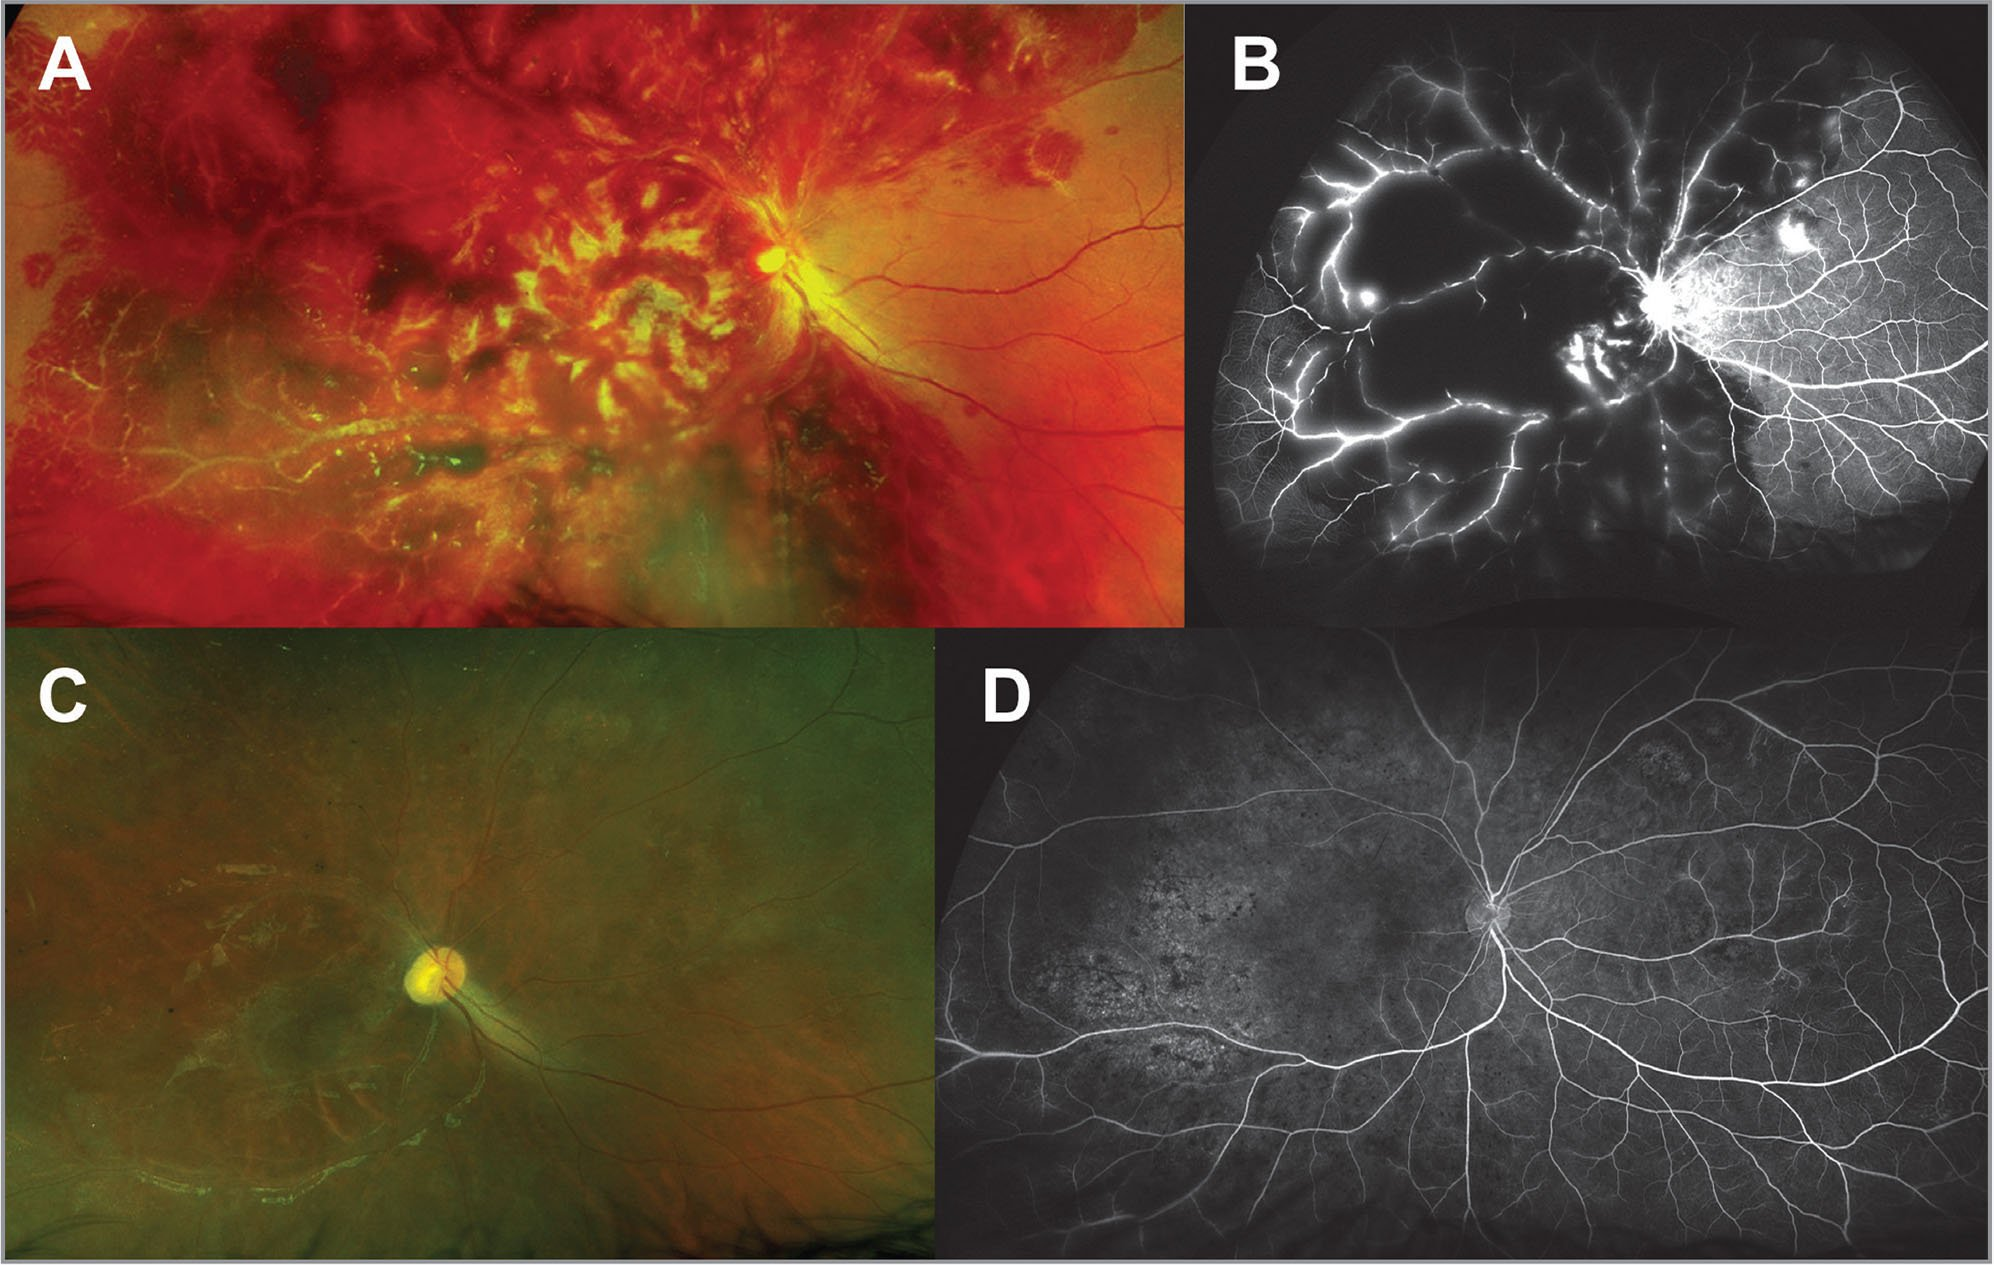 (A) Color fundus photograph of the right eye showing extensive retinal hemorrhages and perivascular infiltration. (B) Right eye fundus fluorescein angiography (FFA) showing blocked fluorescence, vessel wall staining, and retinal neovascularization nasal to the optic nerve. (C) Color fundus photograph after 1 month shows significantly fewer retinal hemorrhages and improved perivascular infiltration. (D) Right eye FFA shows resolved perivascular staining and retinal neovascularization.